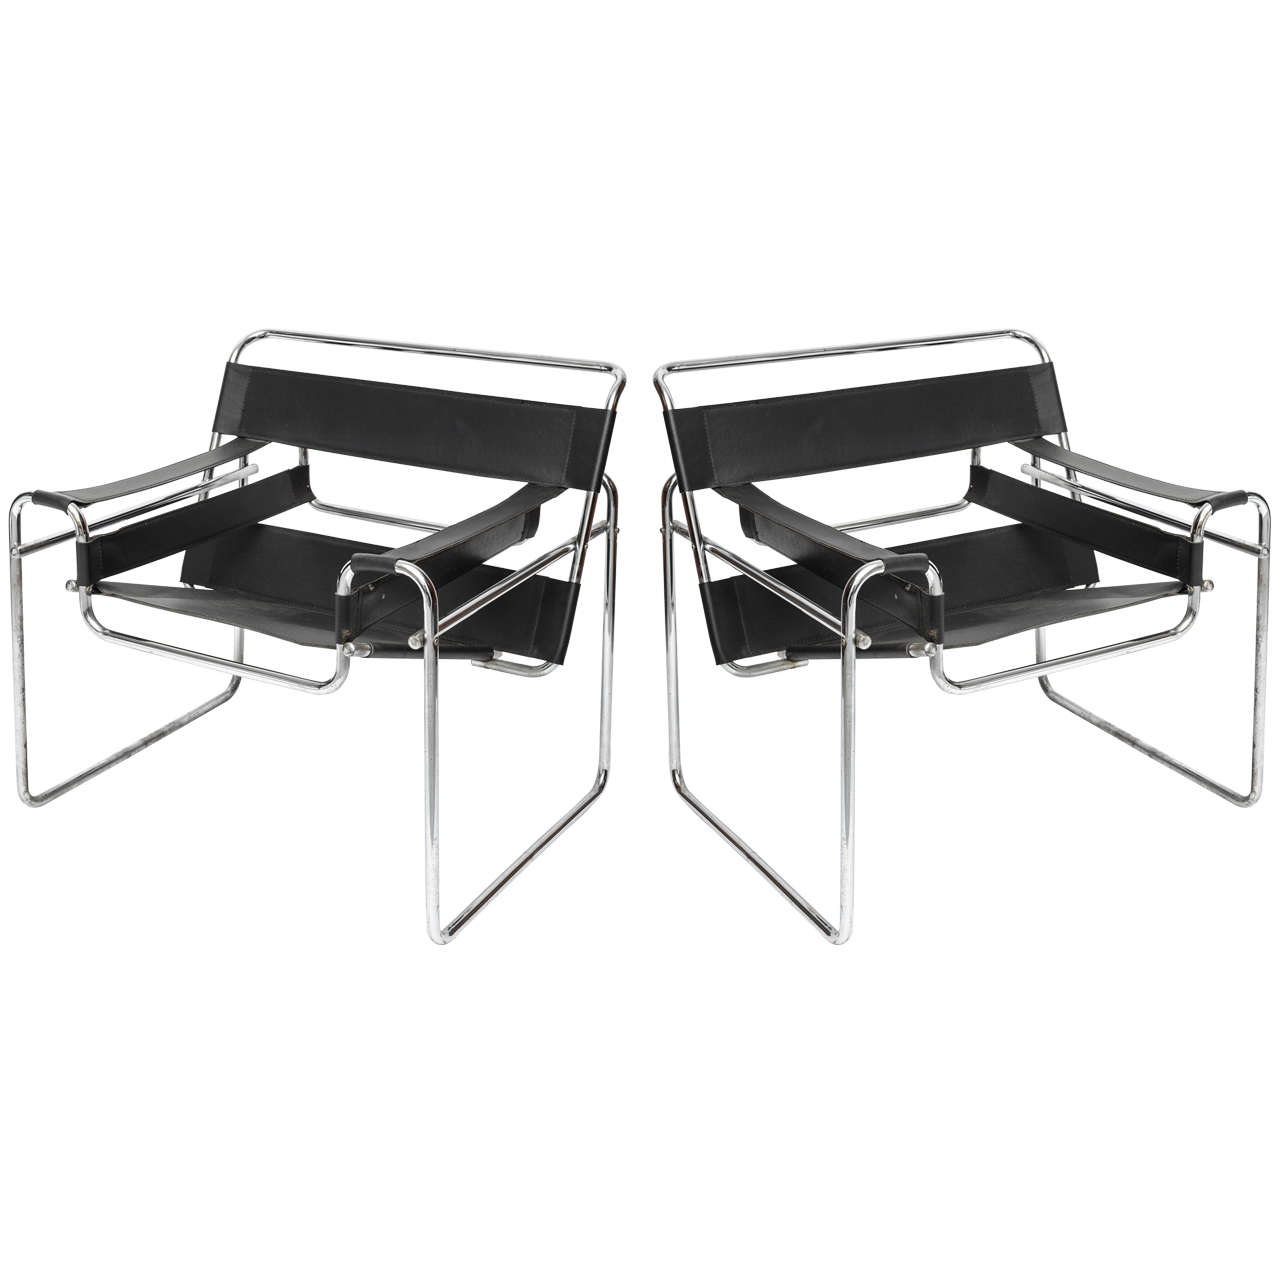 Wassily Chairs, Vintage pair